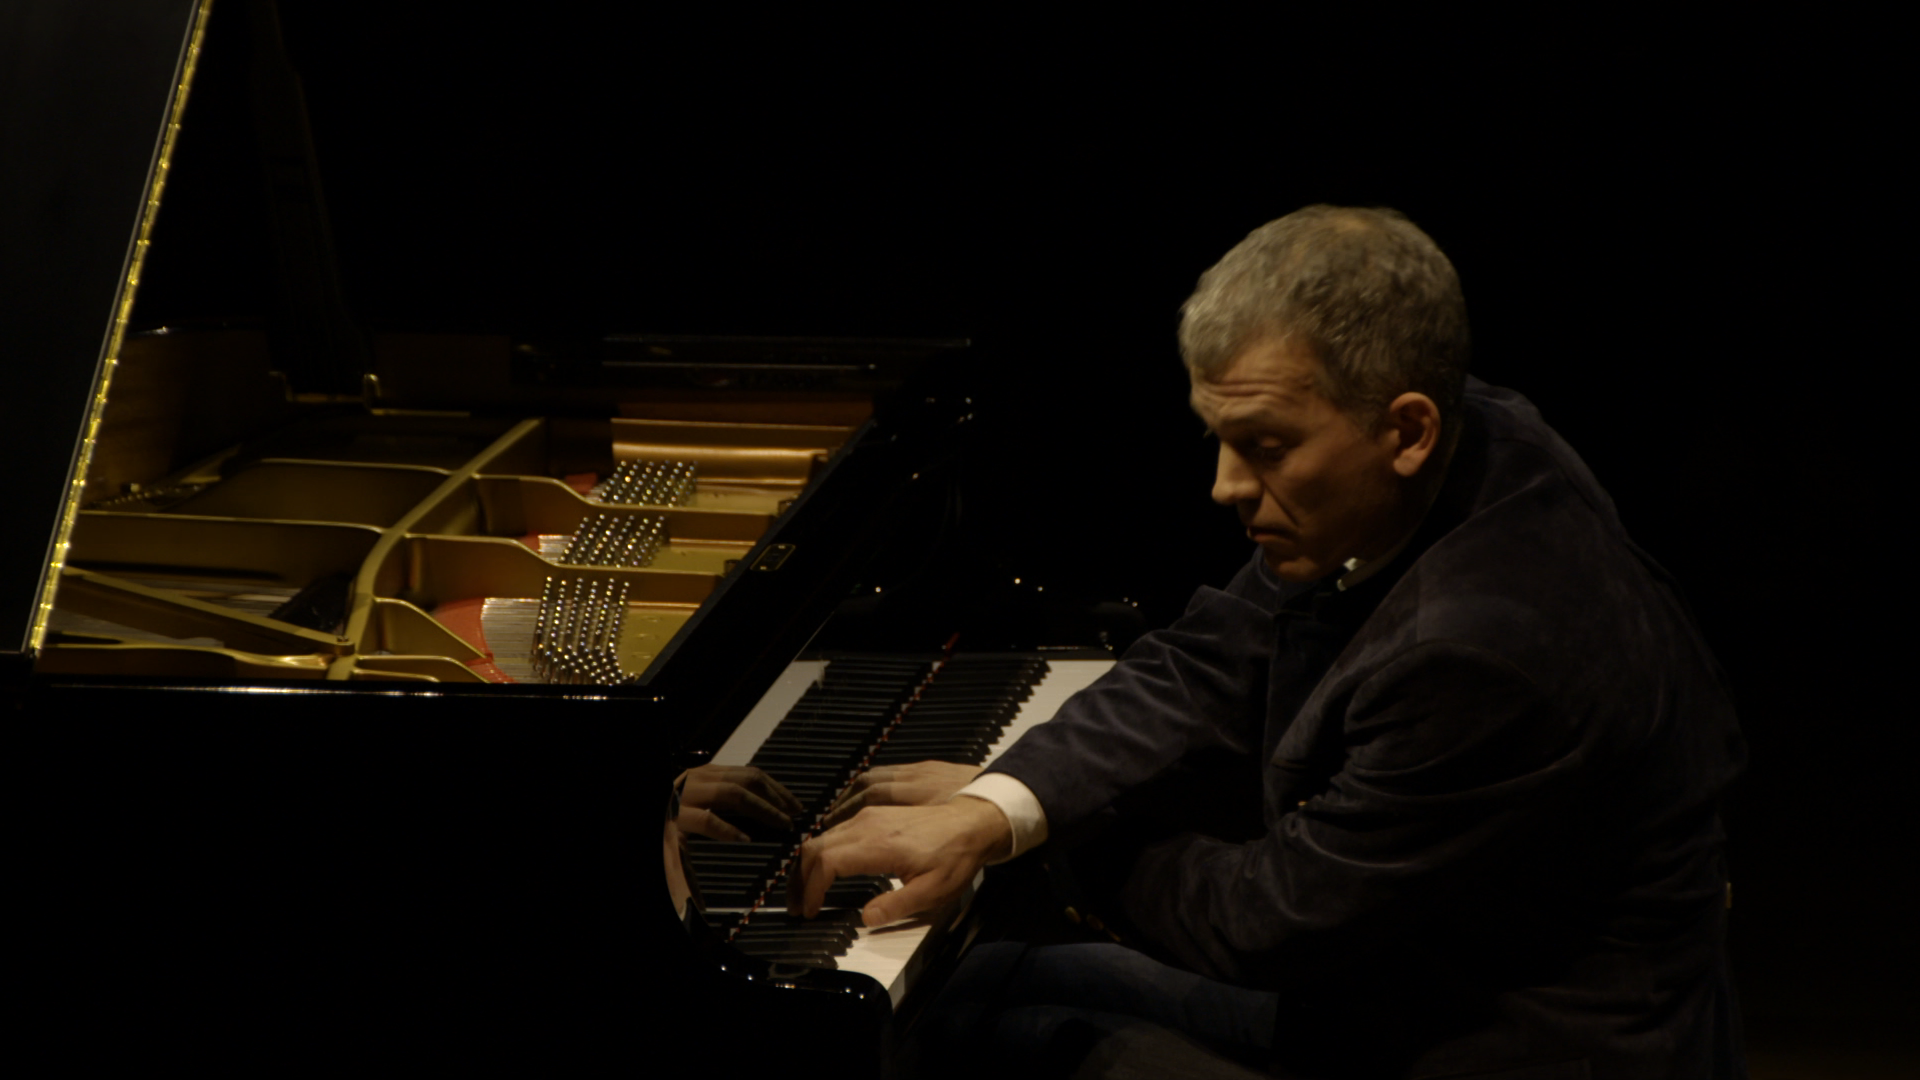 Brad Mehldau: Three Pieces after Bach, en concert à la Philharmonie de Paris